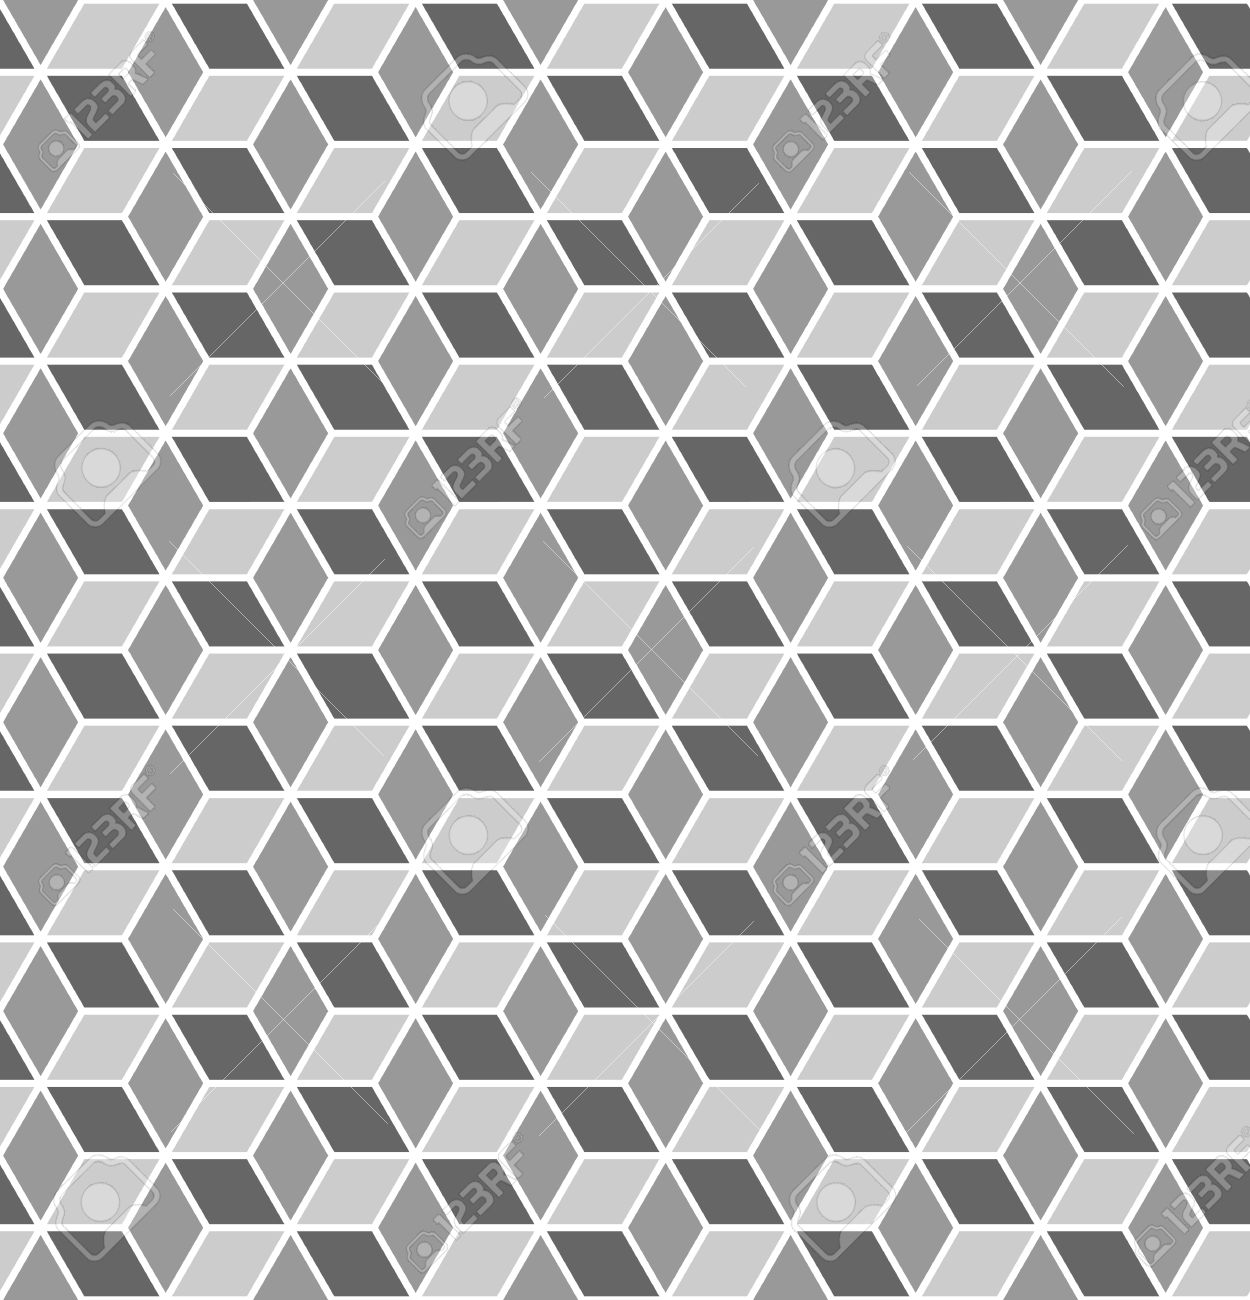 Seamless geometric texture stock photos image 27928433 - Seamless Geometric Texture Stock Photos Image 27928433 3